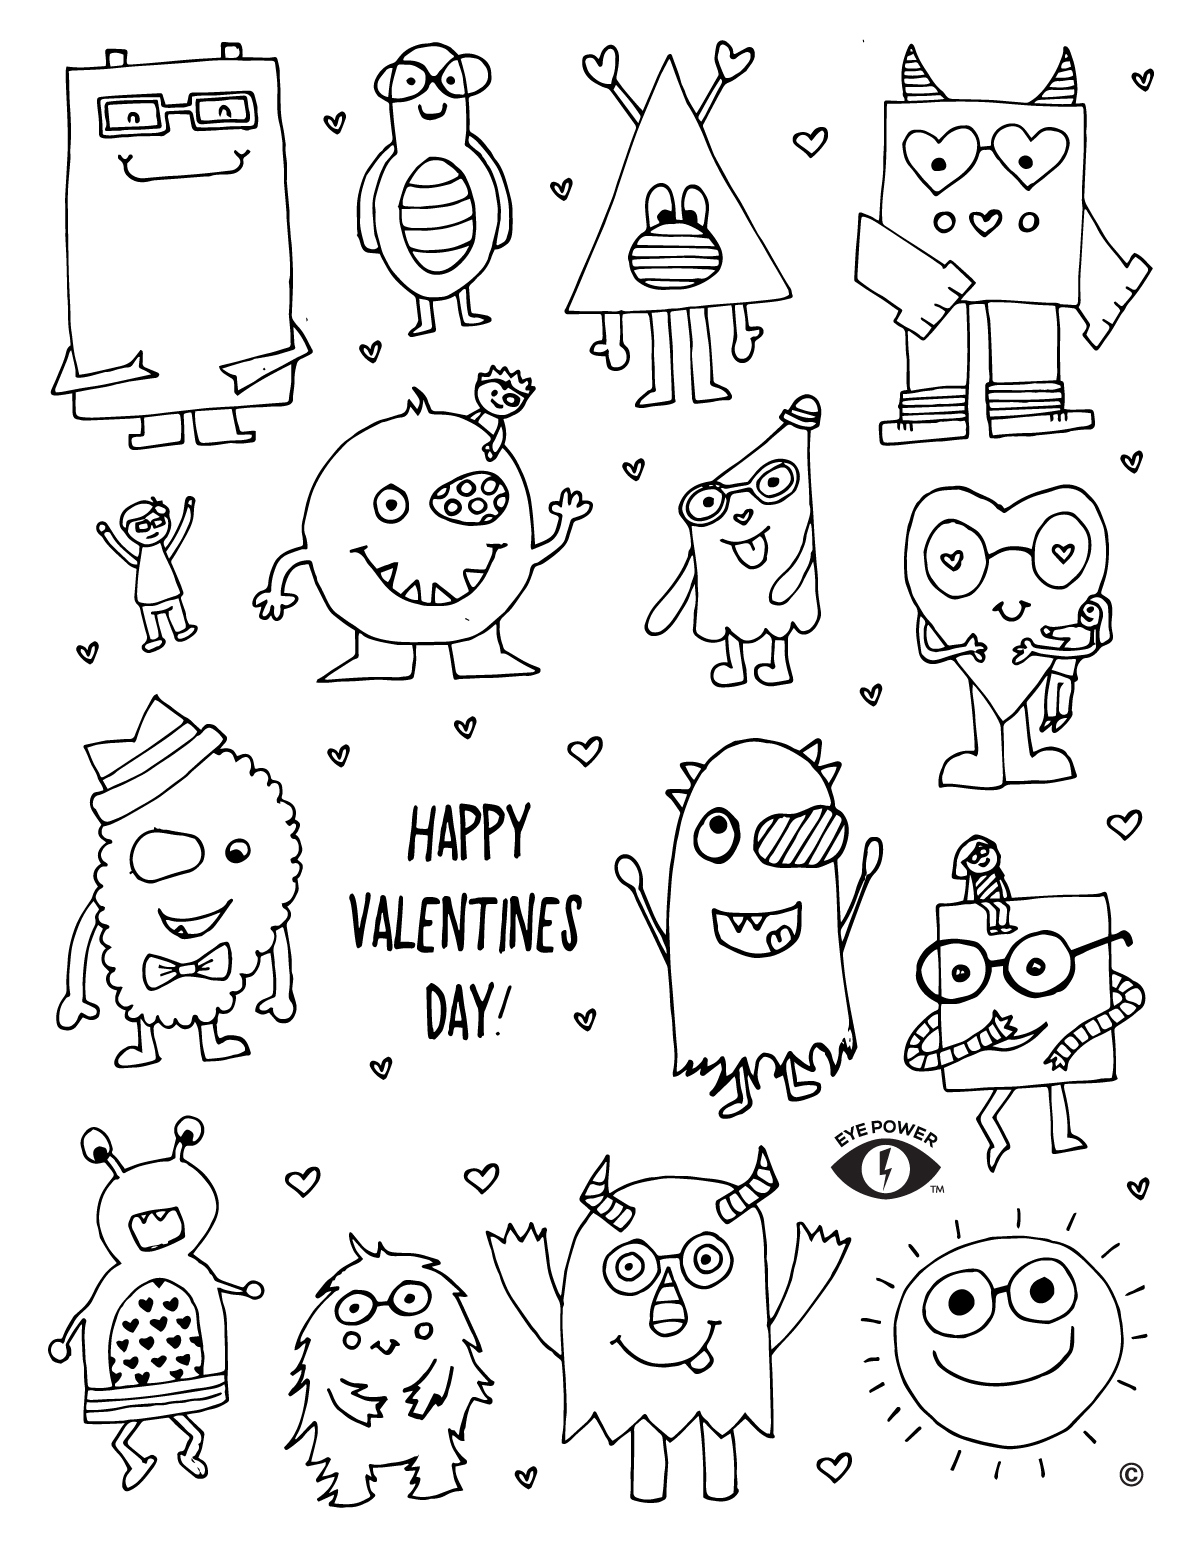 valentines day print out coloring pages - free valentines coloring page printable eye power kids wear